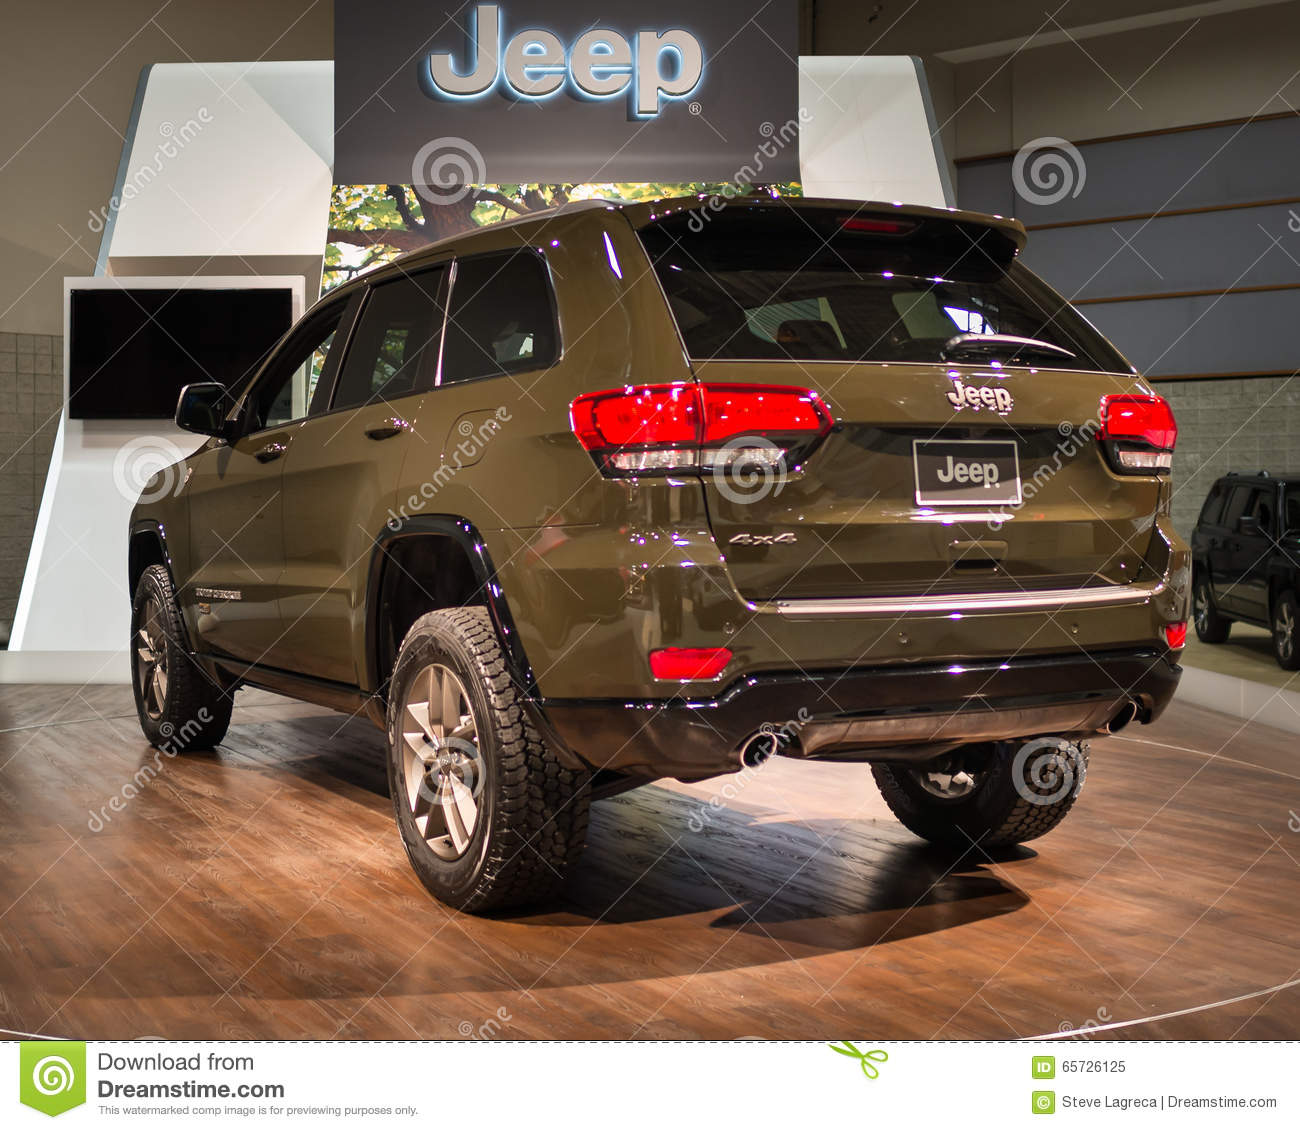 jeep-grand-cherokee-th-anniversary-edition-washington-dc-january-car-washington-d-c-auto-show-was-one-largest-auto-65726125.jpg